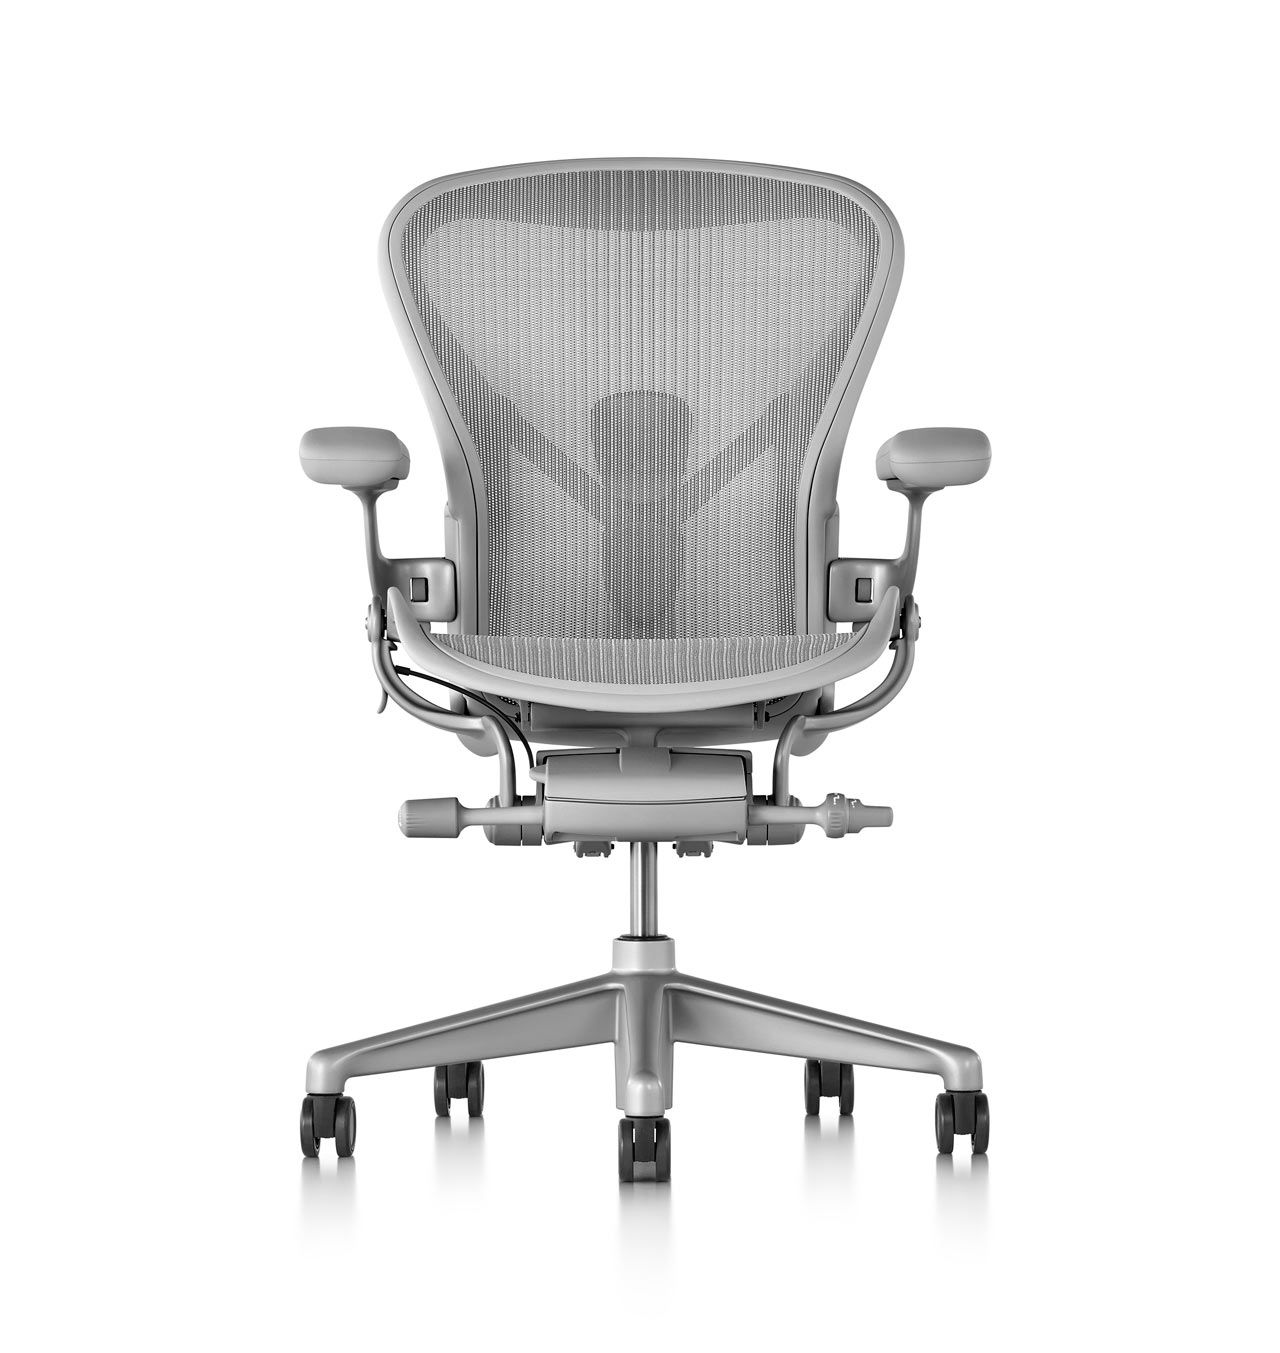 Herman Miller S Aeron Chair Gets Remastered With Images